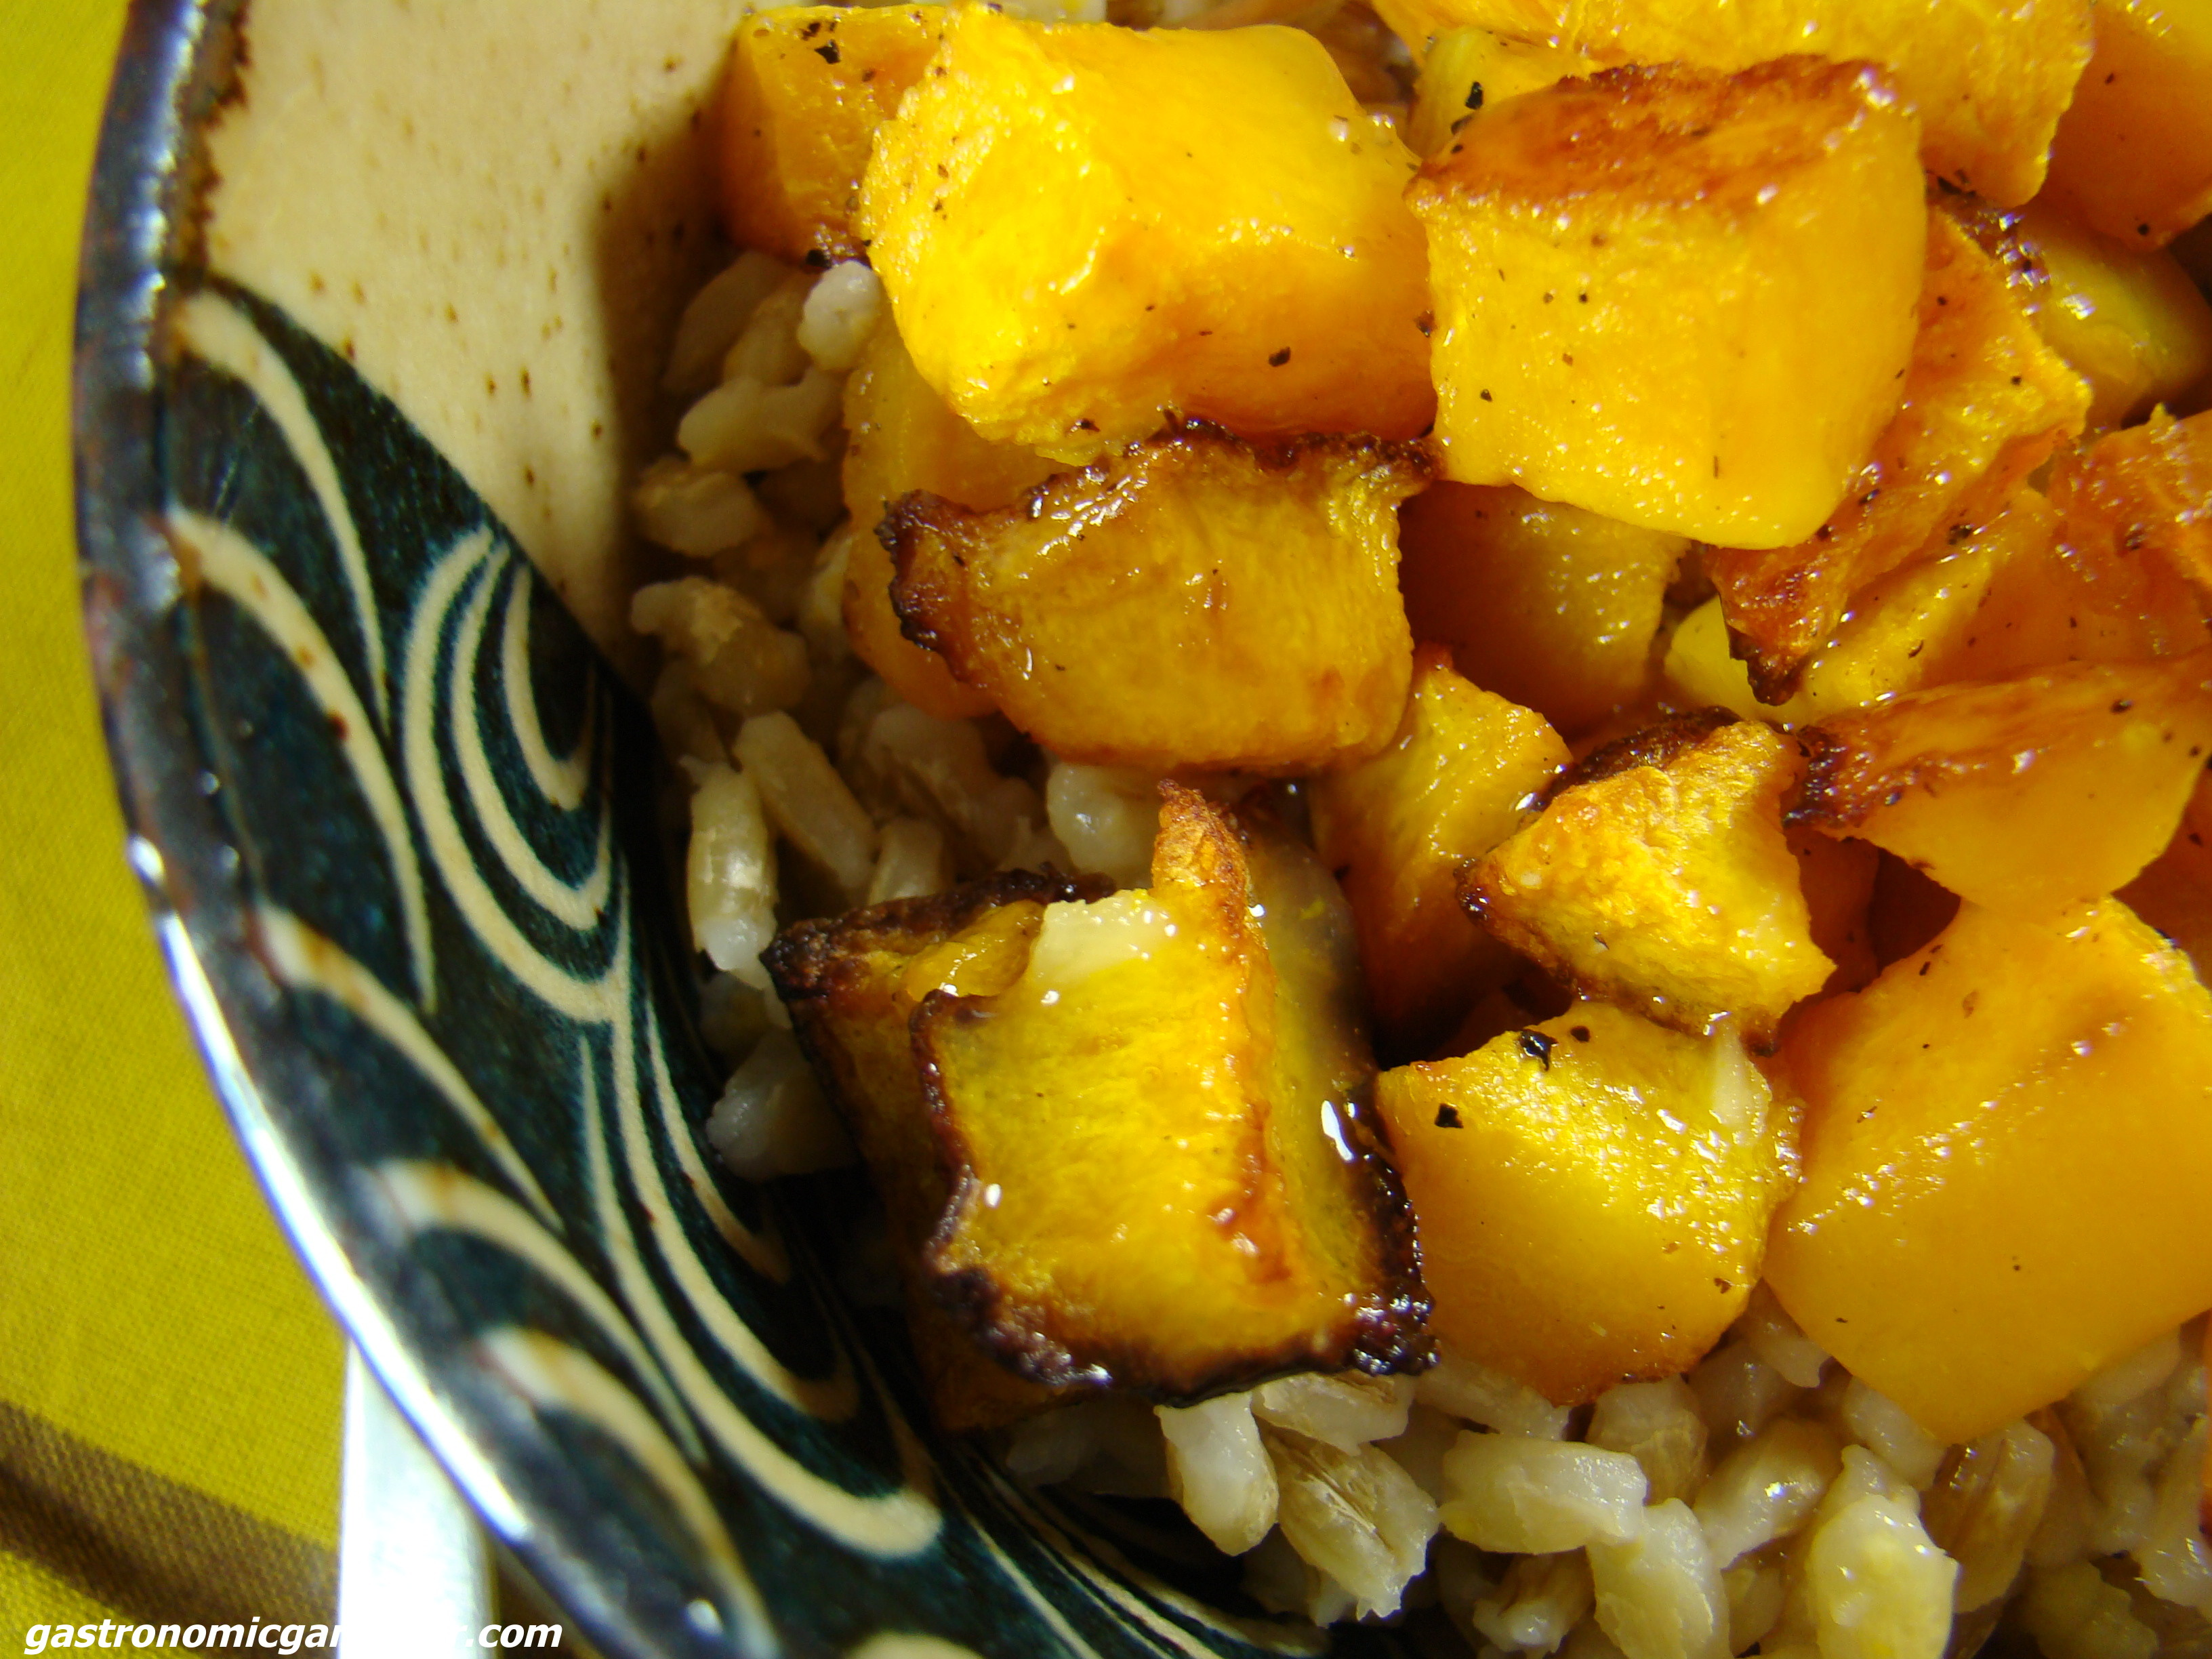 Barley and Butternut with Orange Ginger sauce